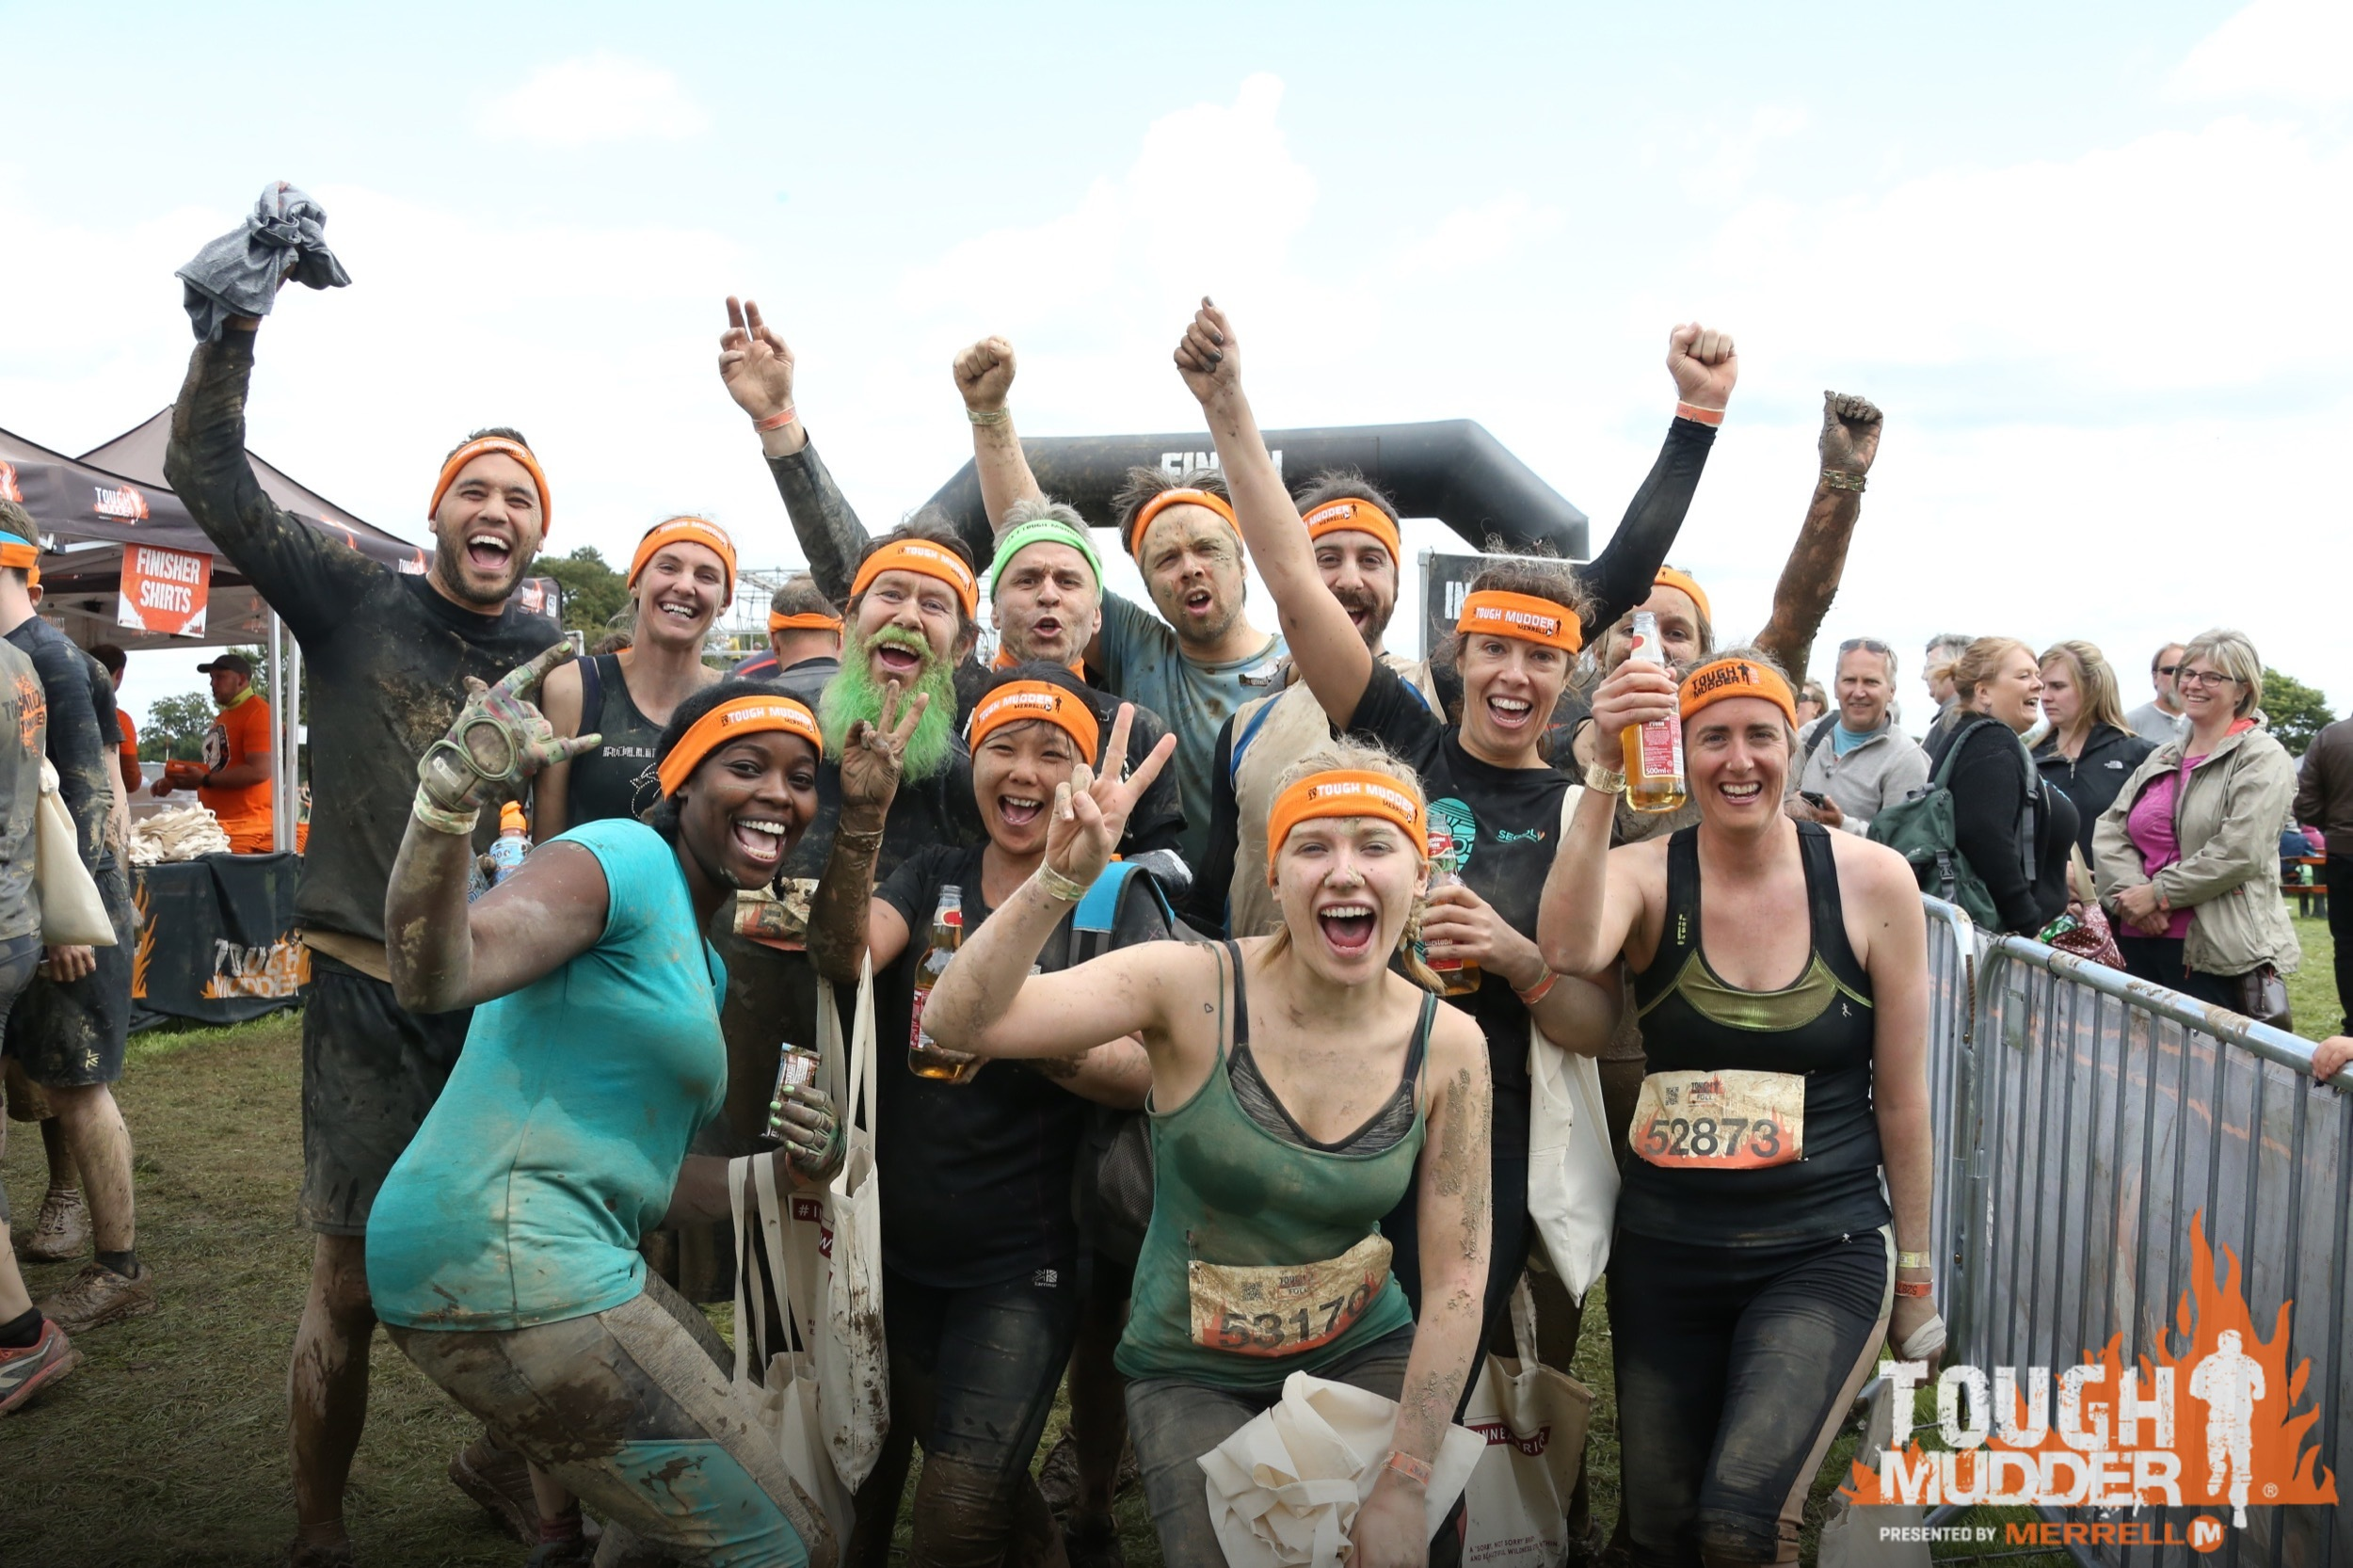 ToughMudder1.jpg